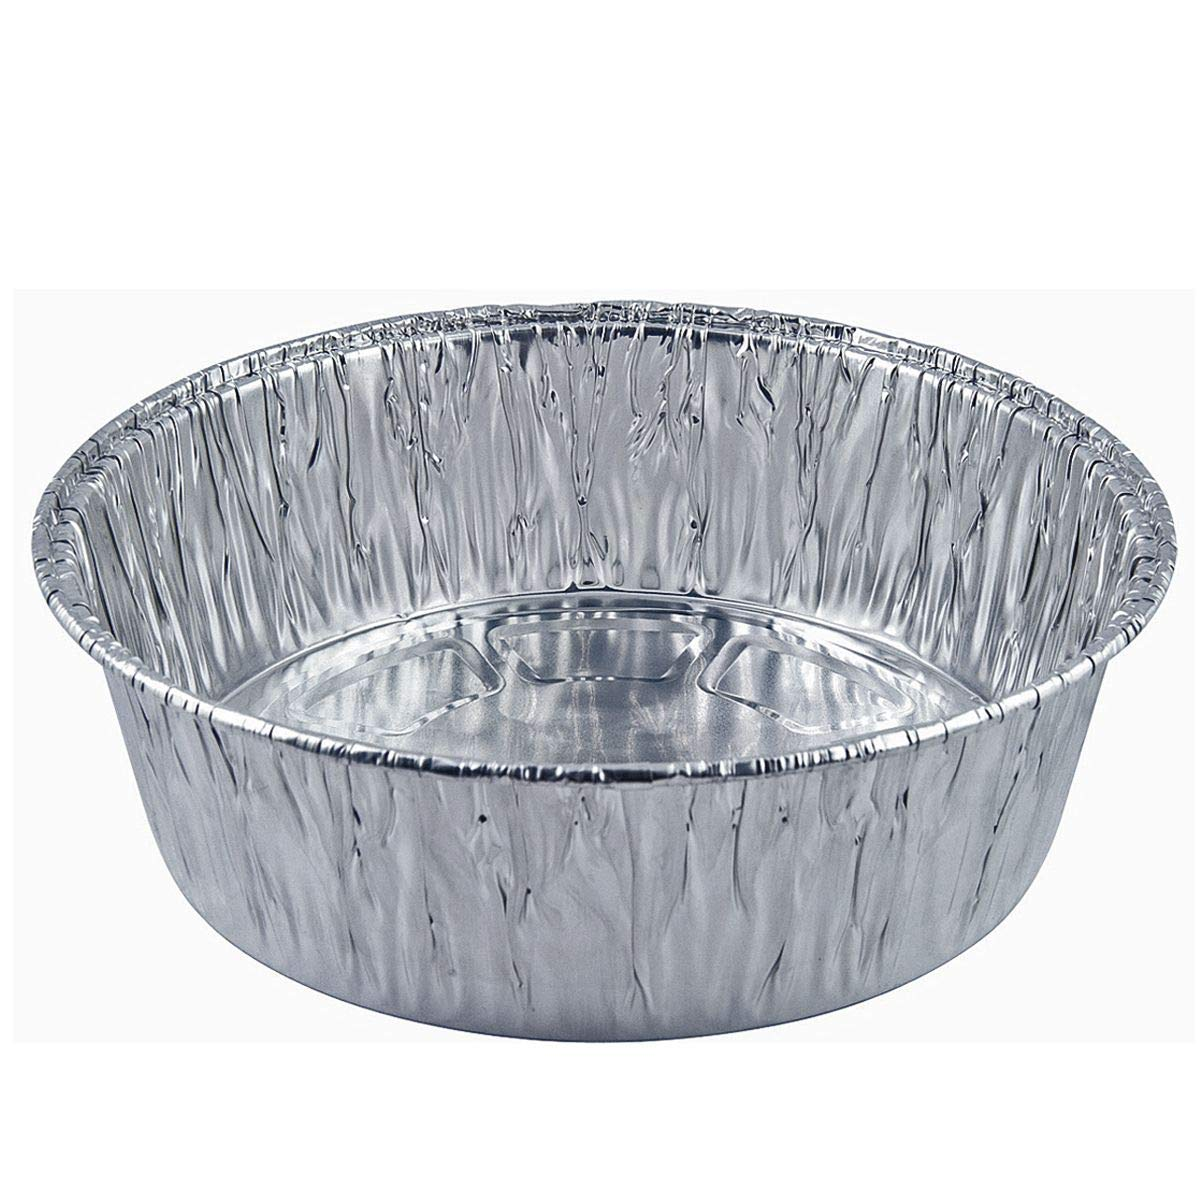 40-Pack of 9-Inch Round Foil Pans with 40 Board Lids for Baking Cooking Disposable Aluminum Foil Cake Trays Storage /& Reheating Freezer /& Oven Safe